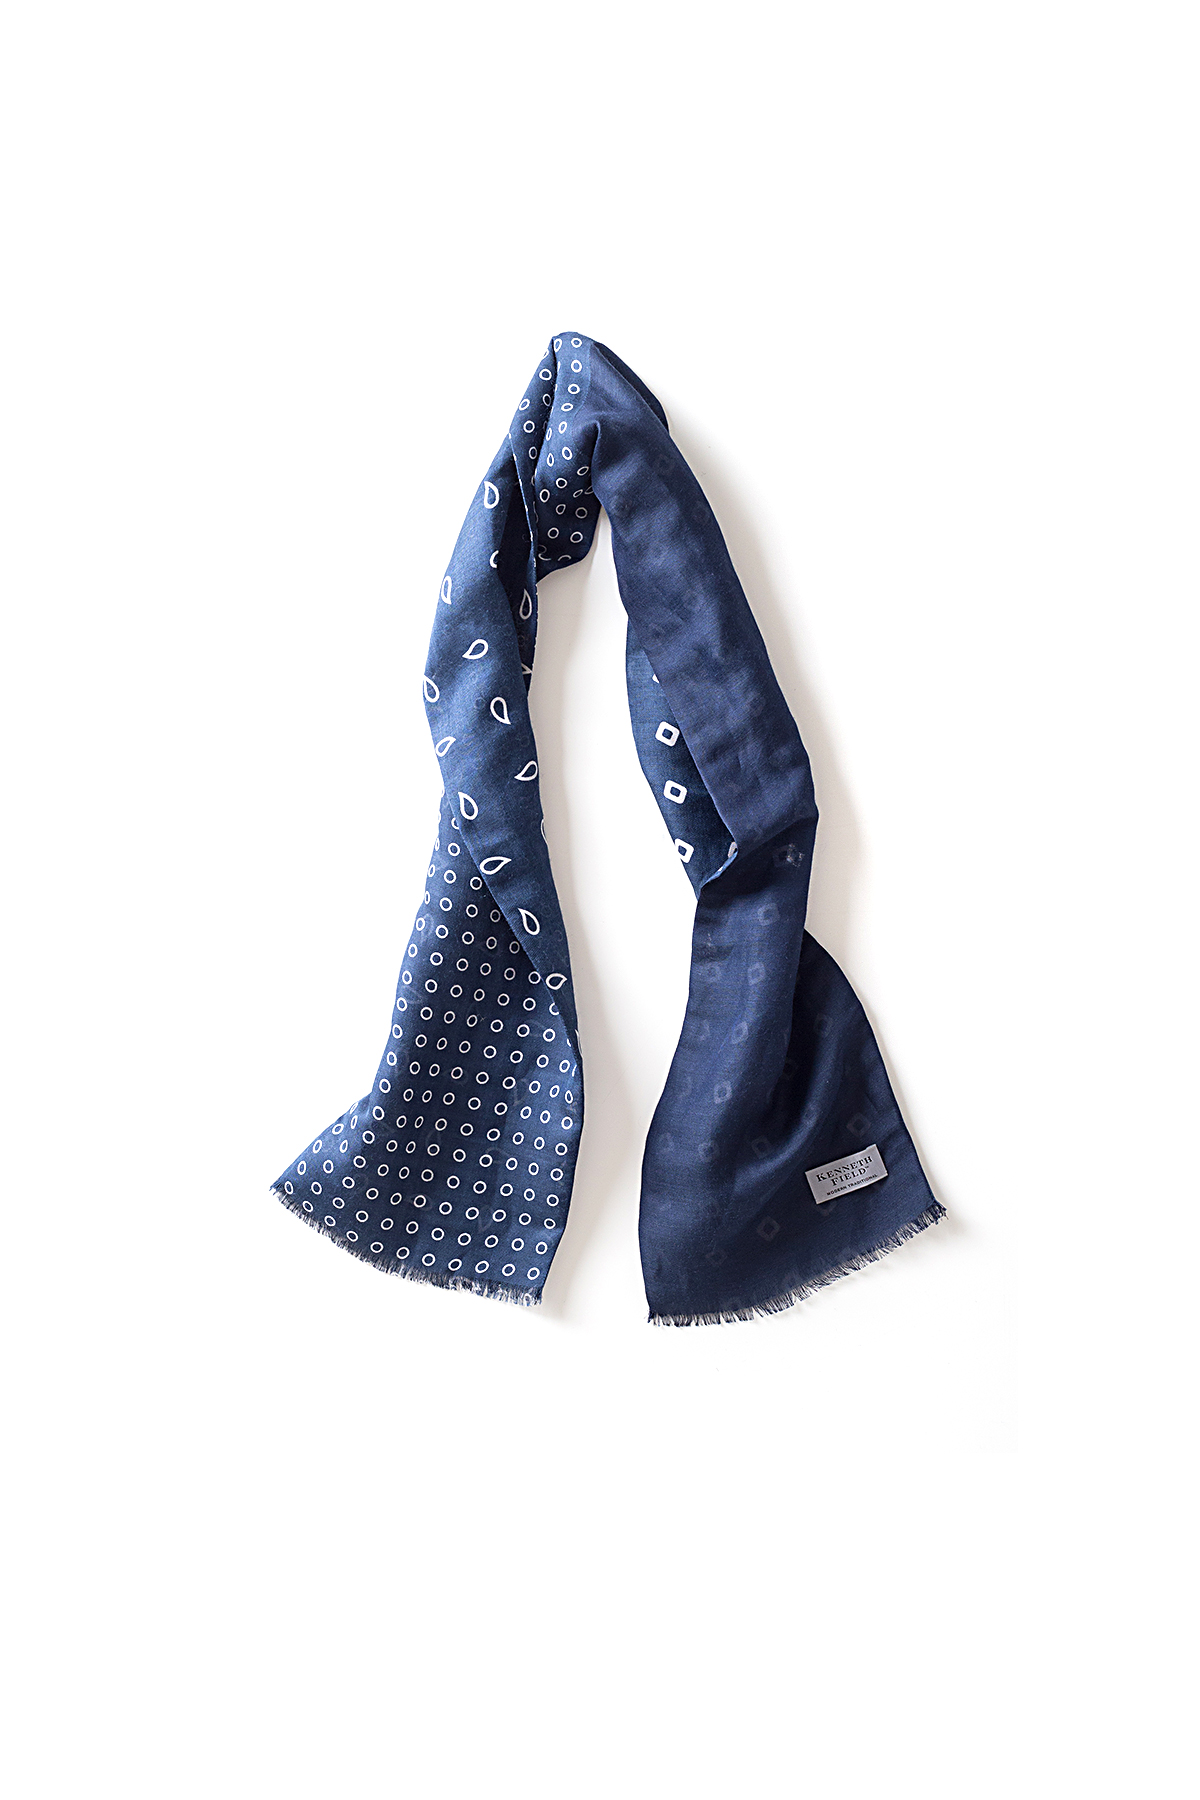 Kenneth Field : 4F 3 Dots & 1 Solid (Navy x White)